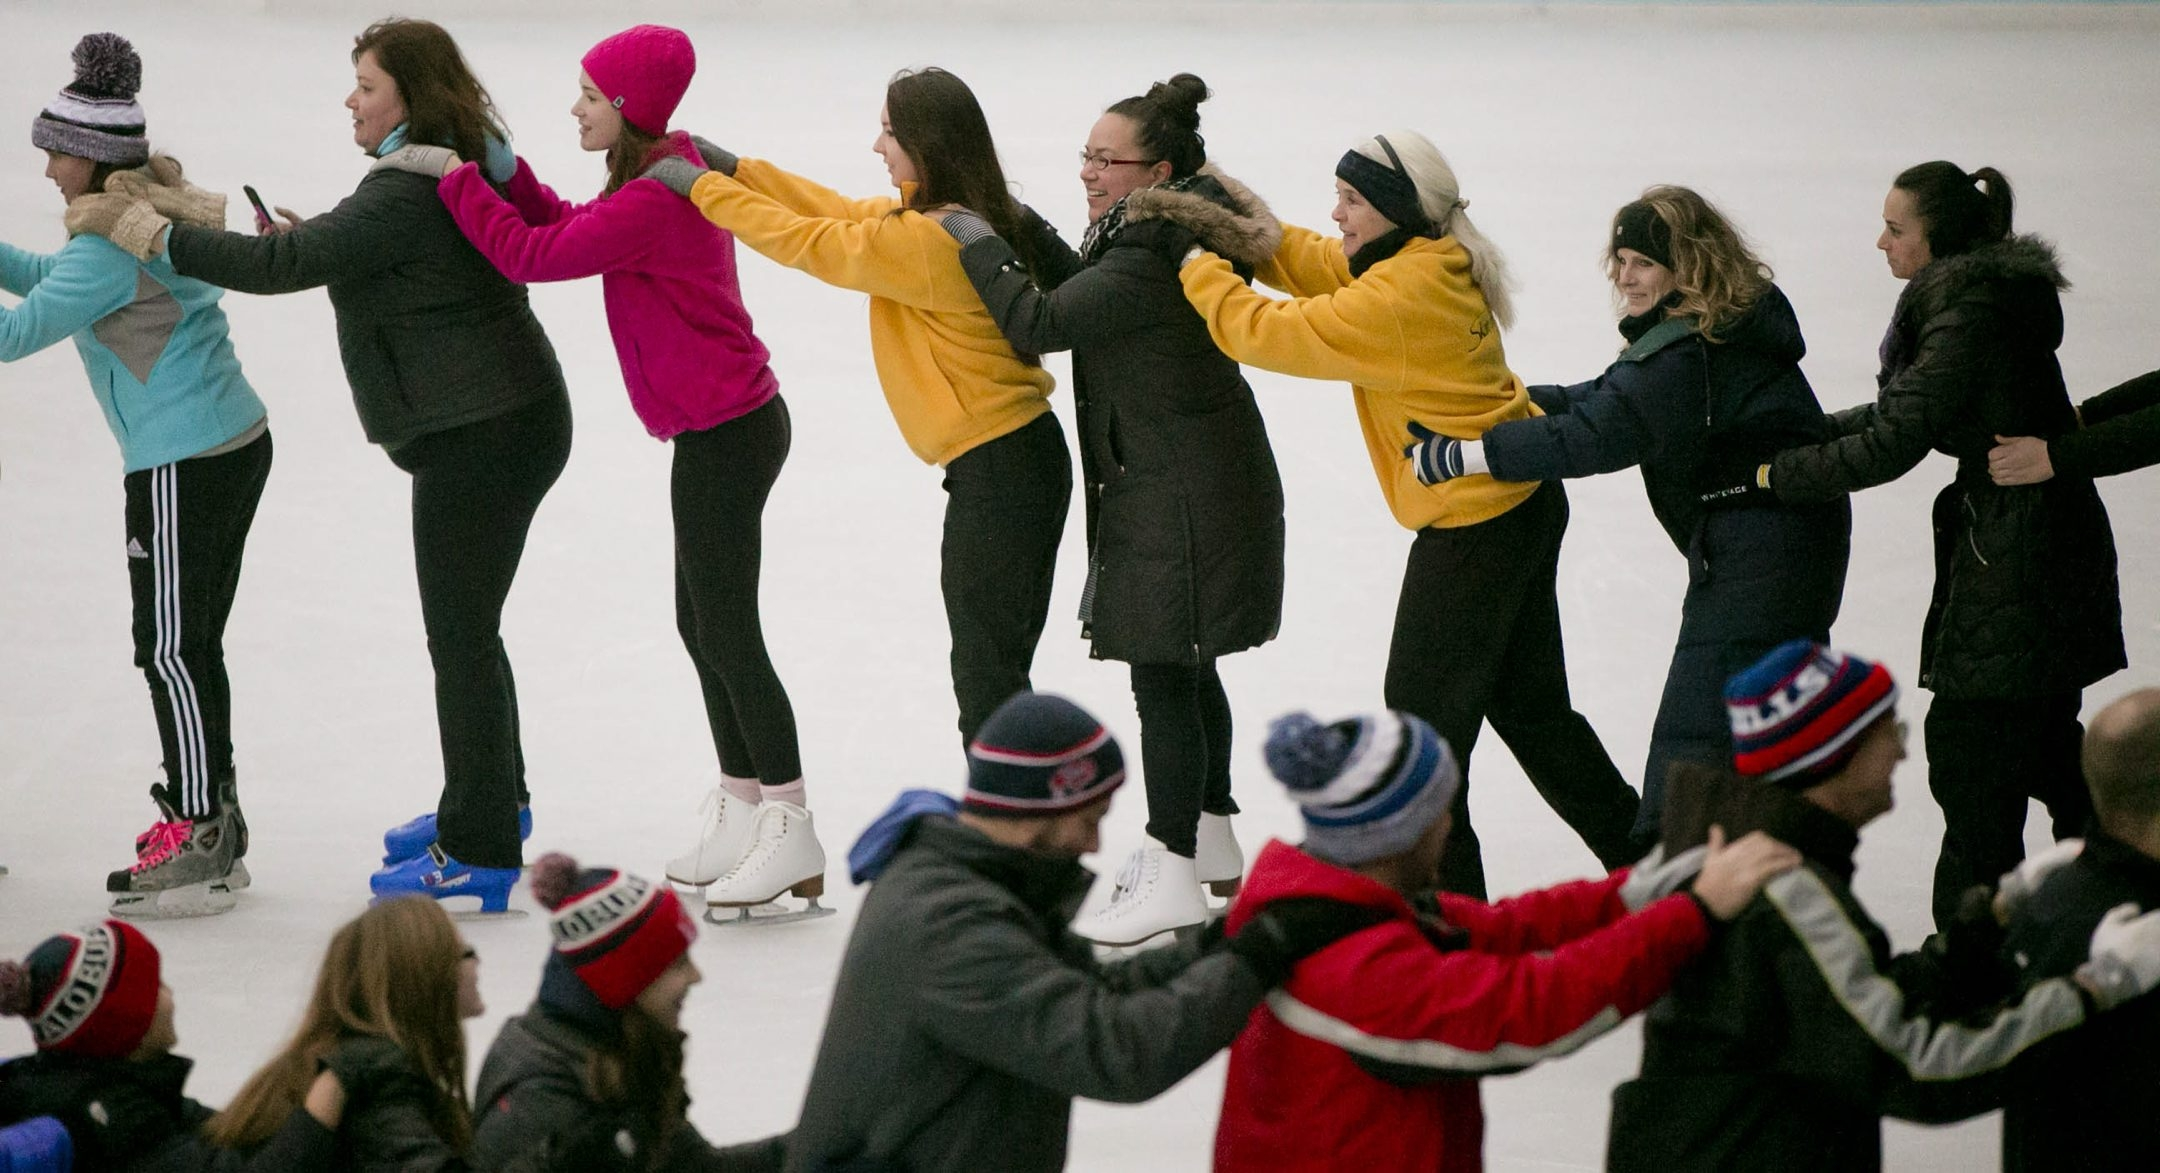 """Approximately 150 ice skaters snake around the ice at Canalside in an attempt to break the Guiness world record for the longest ice line in a benefit for Make-A-Wish during """"Chillabration"""" festivities, Saturday, Jan. 16, 2016.  Unfortunately the attempt fell short of the current record of 370, which was set on Feb. 28, 2015 in Hachinohe, Aomori, Japan.  (Derek Gee/Buffalo News)"""